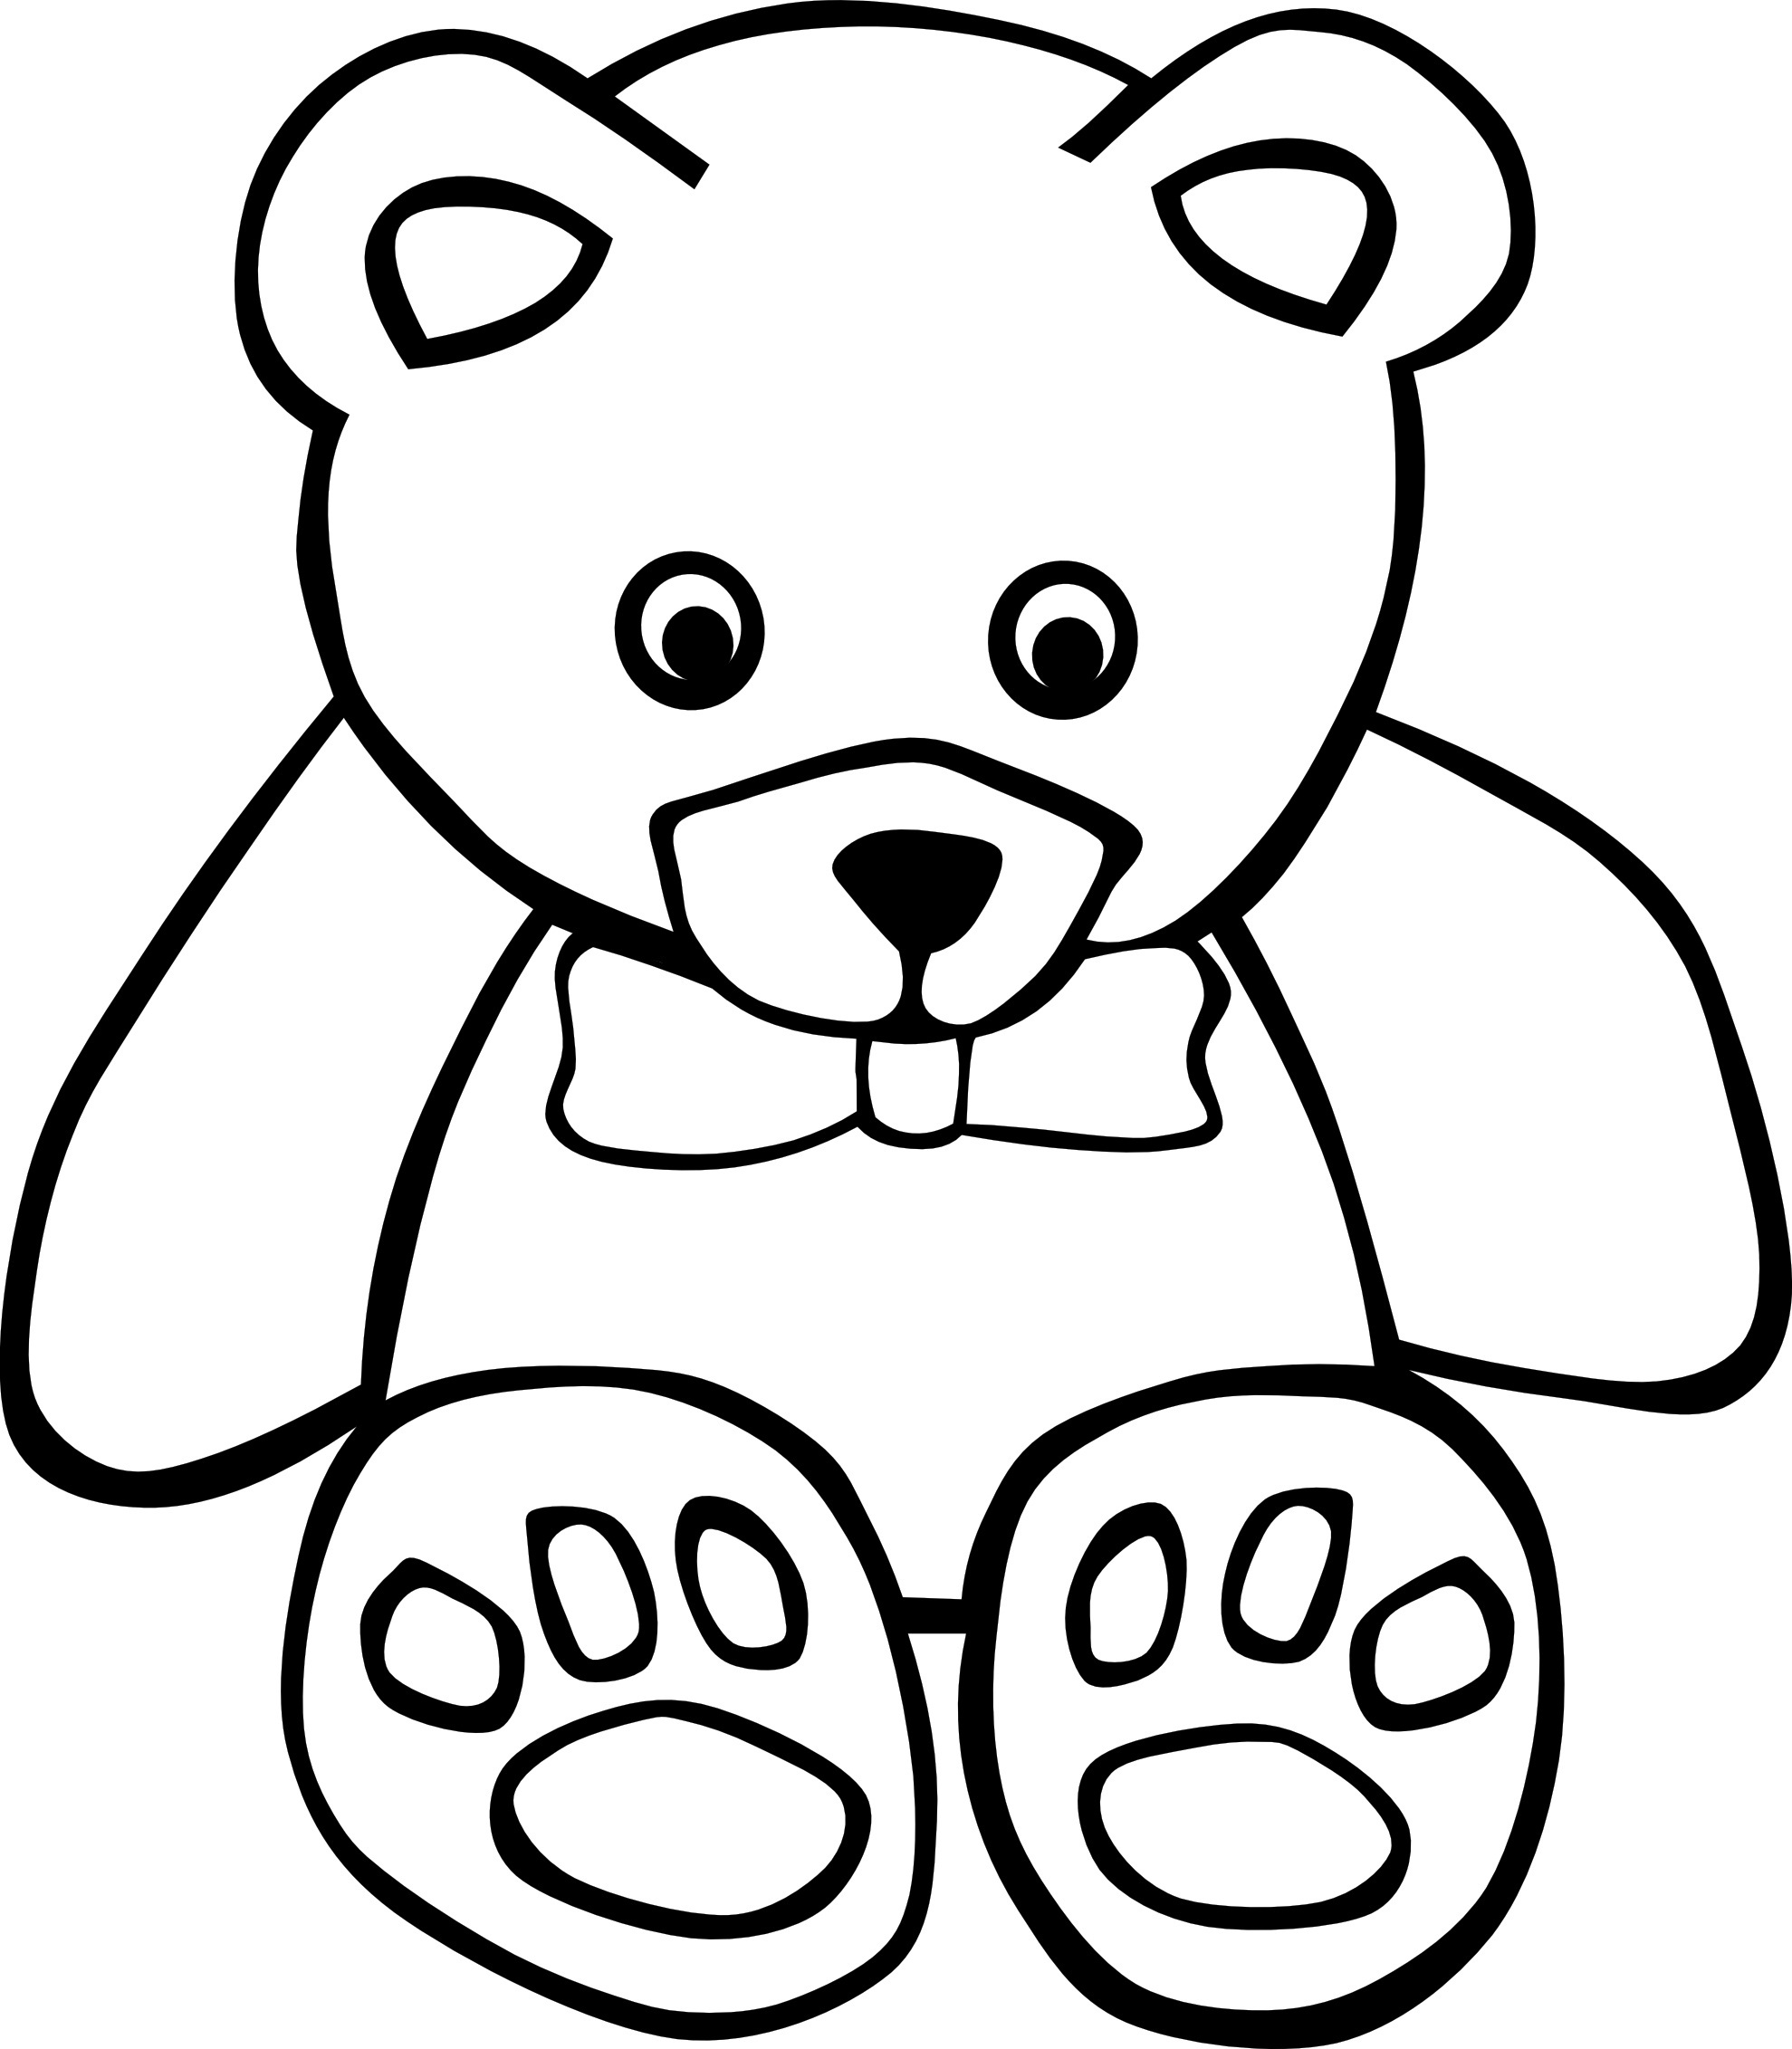 coloring pages of bears free printable bear coloring pages for kids of coloring bears pages